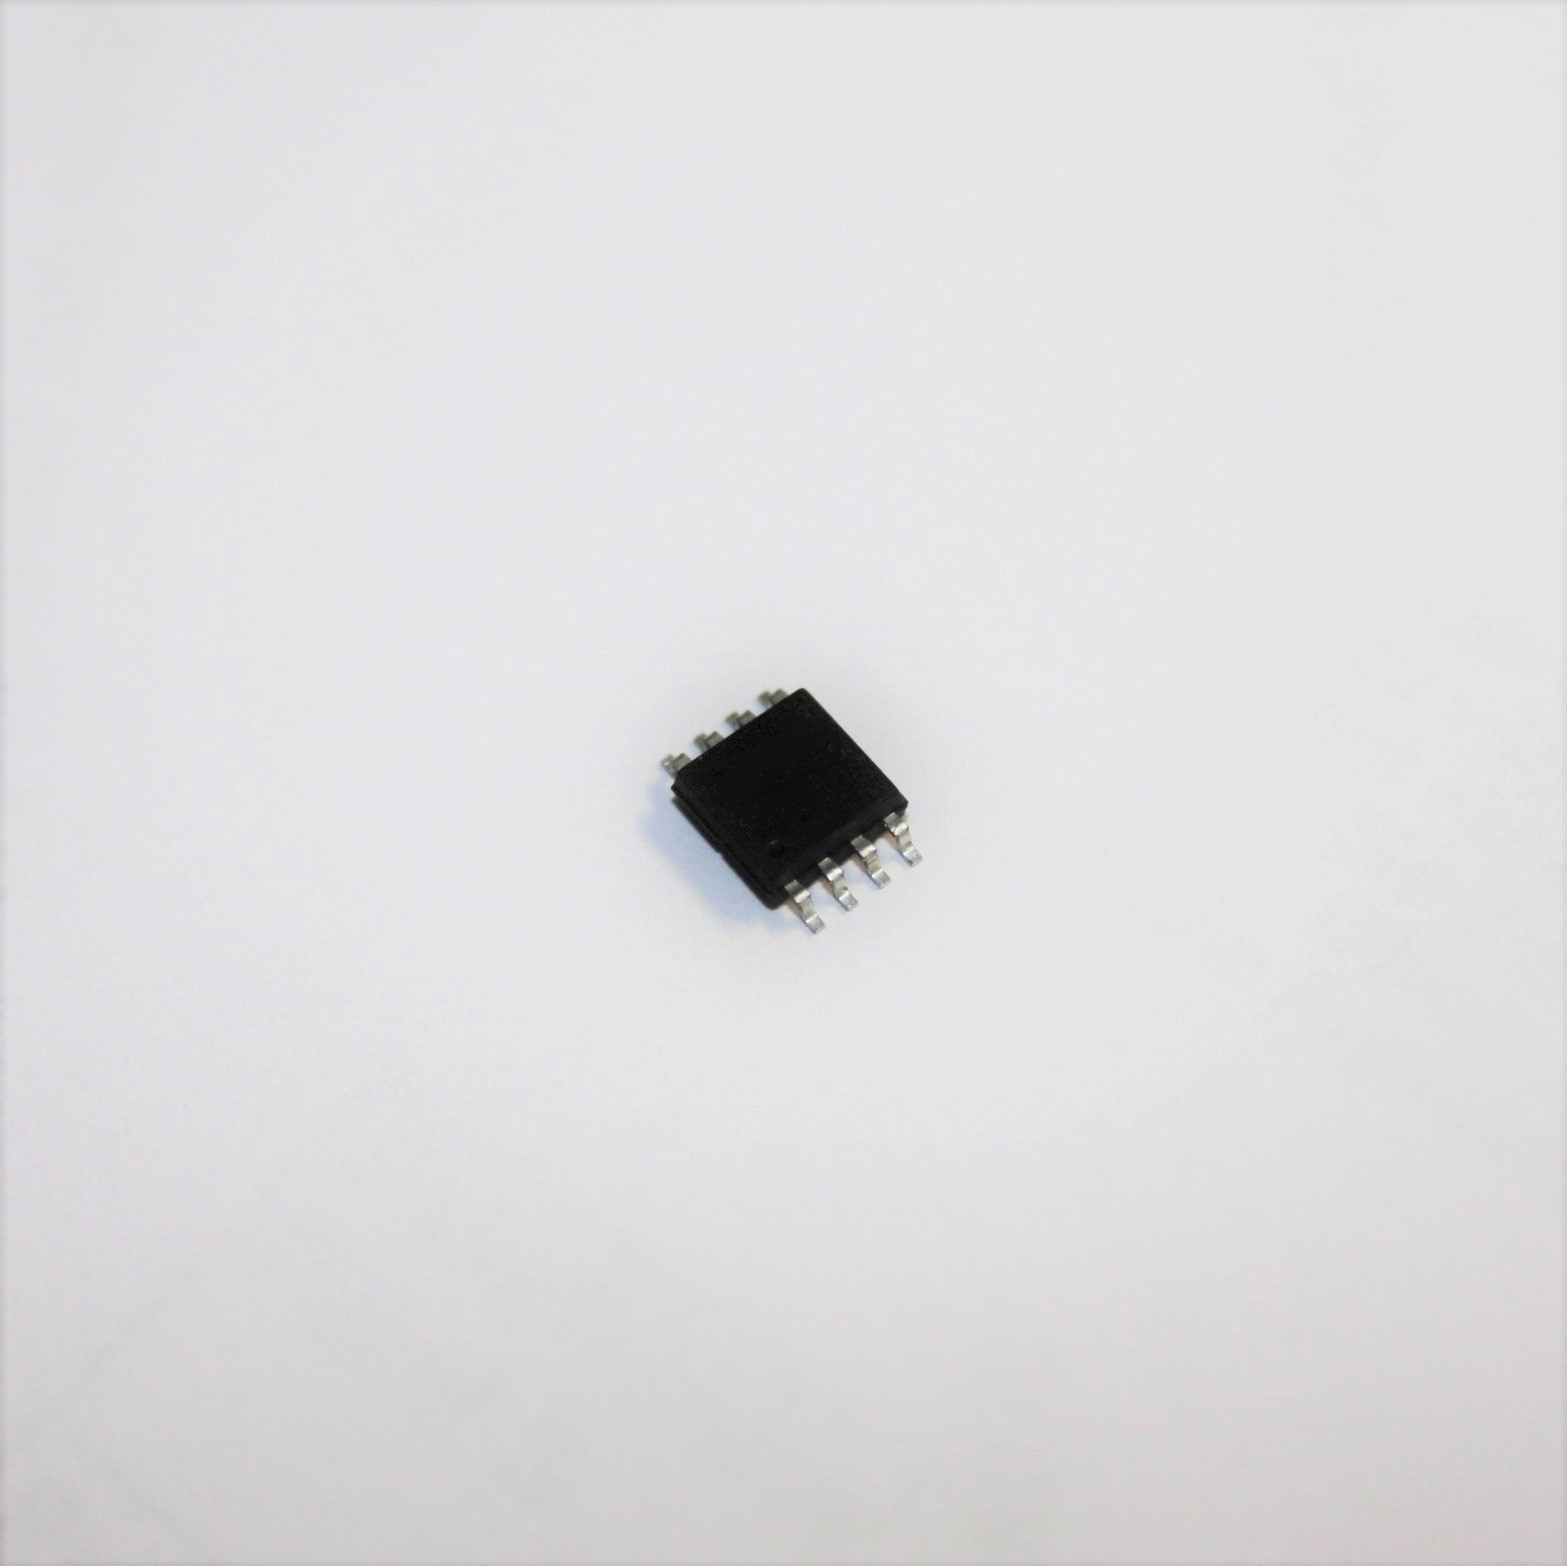 SST 25VF016B 50-4C-S2AF, 16 Mbit SPI Serial Flash, SOIC-8